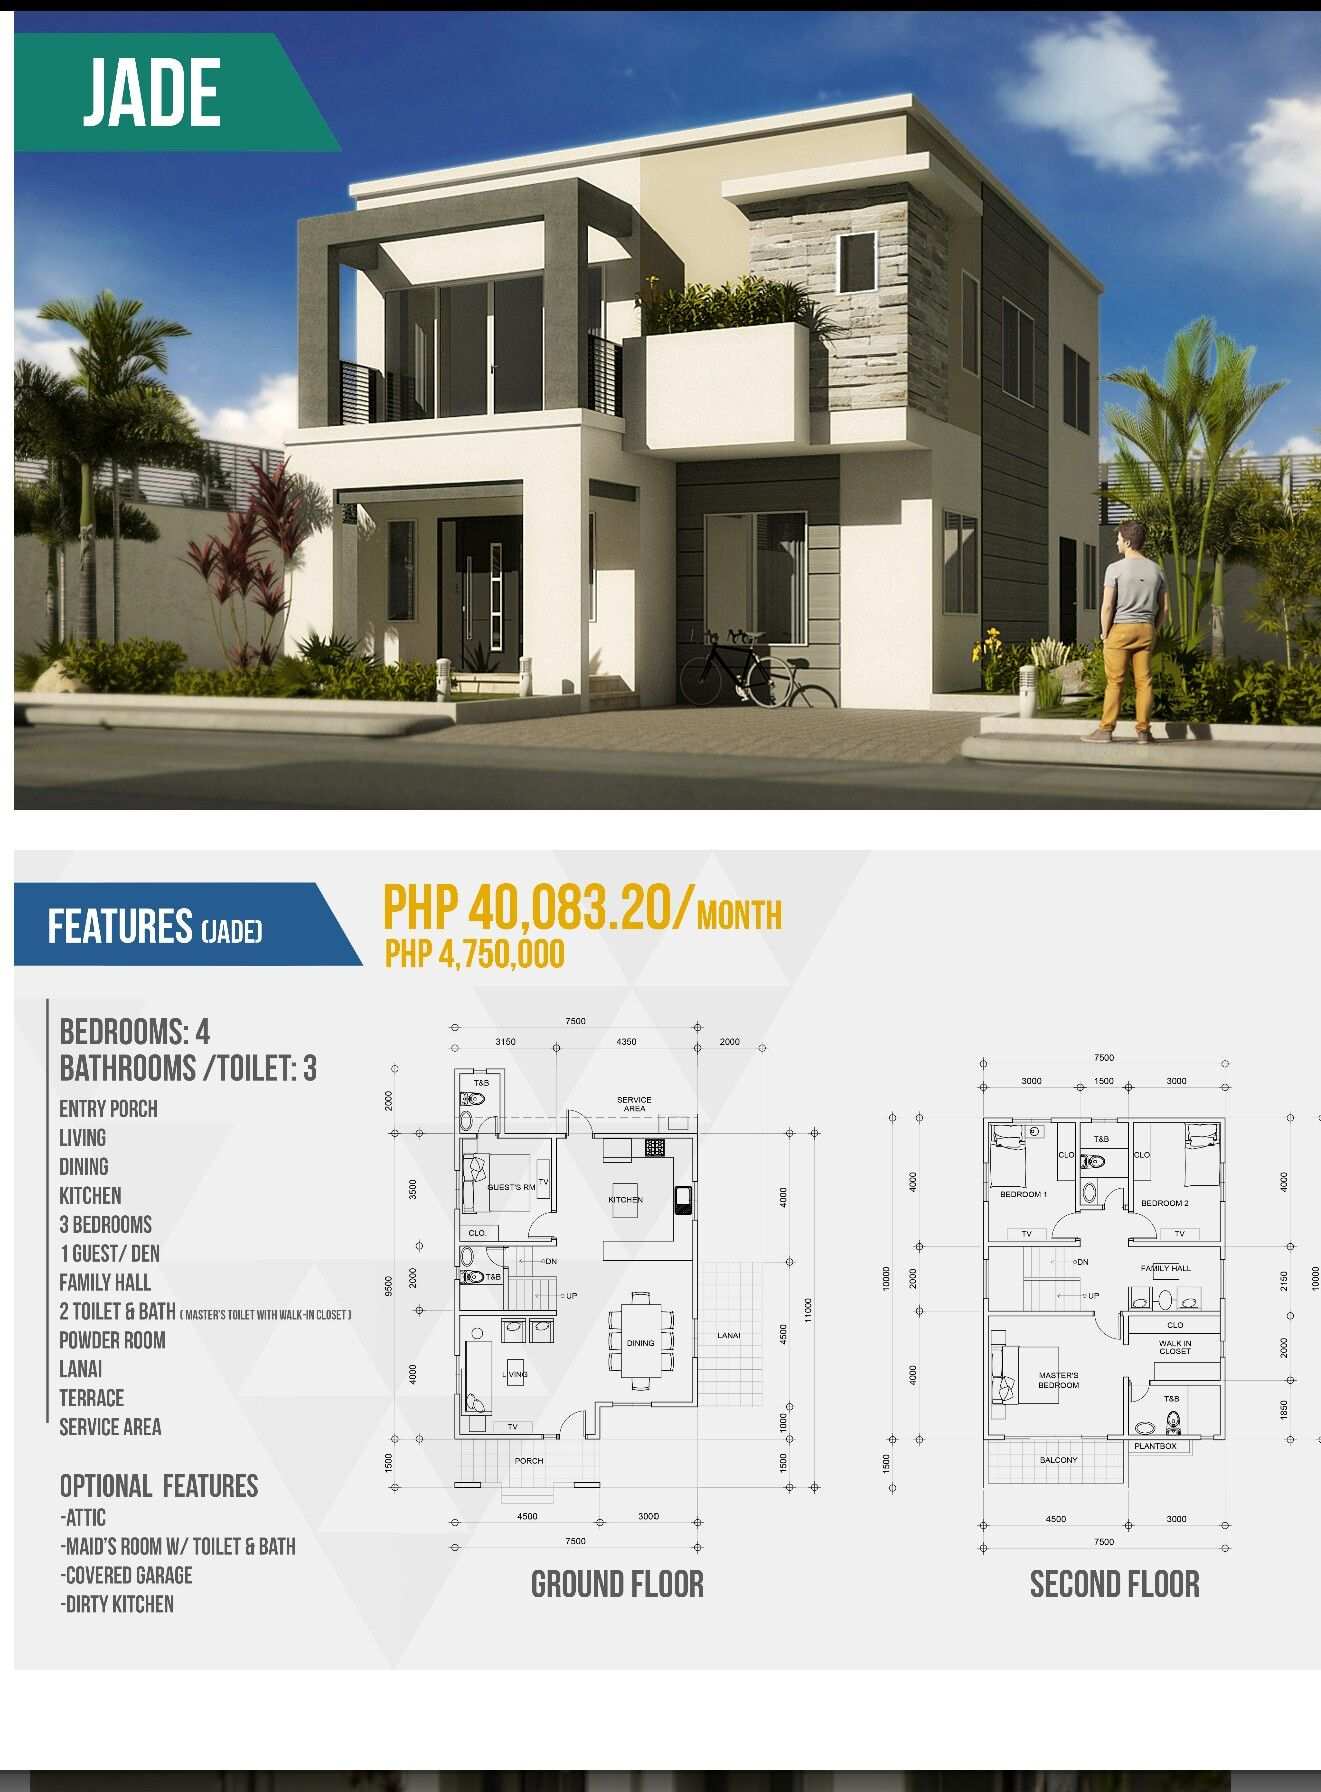 Our Featured Pre Designed Smart Home For Today Is Jade Visit Us At Www Makbuildersph Com Philippines House Design 2 Storey House Design Modern Bungalow House